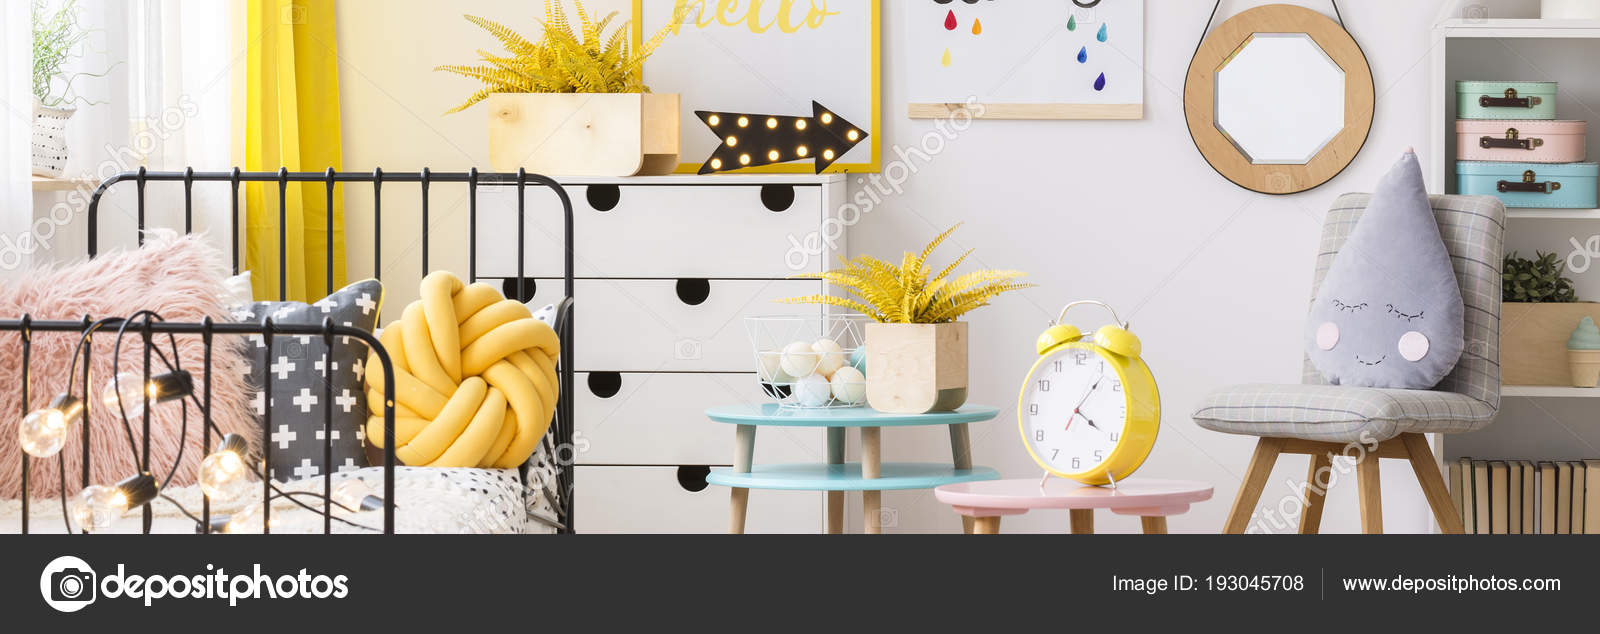 Yellow Flowers Clock Table Cozy Bedroom Interior Grey Chair Mockup